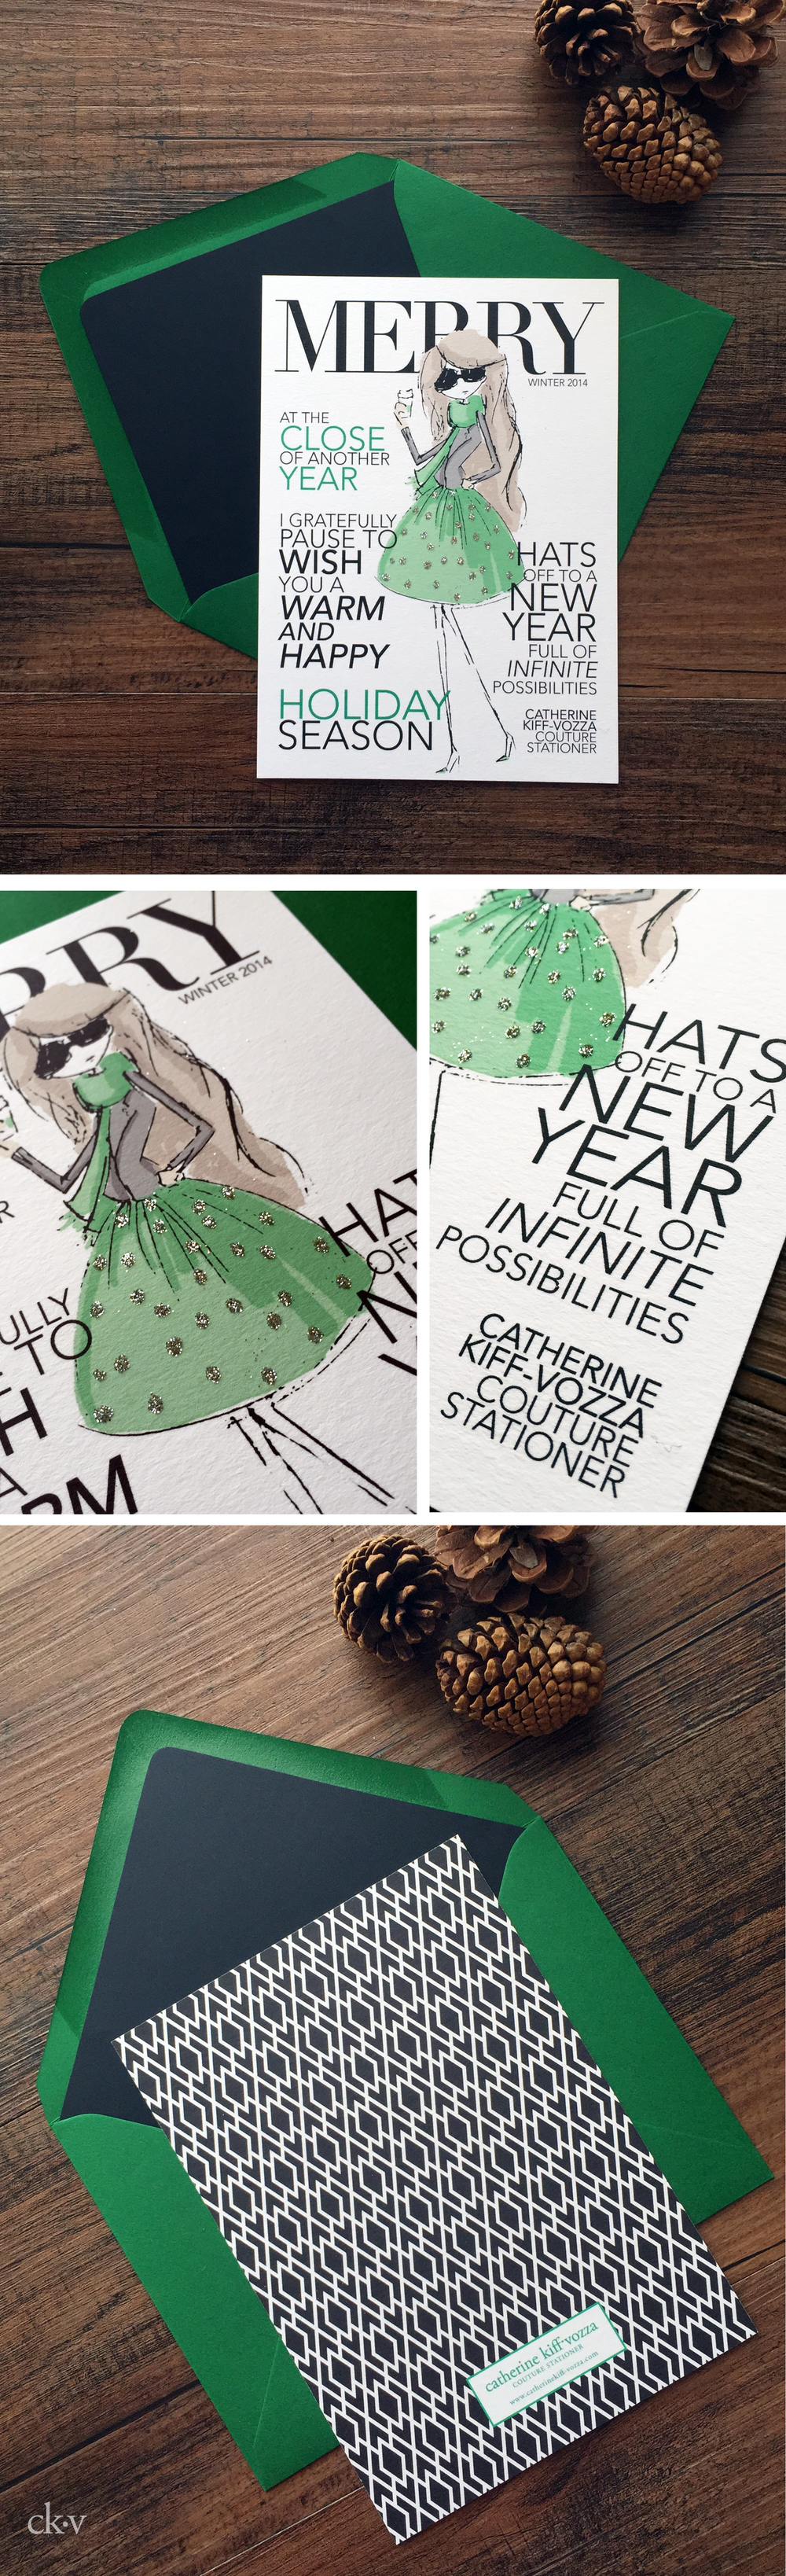 magazine custom fashion illustration doodle holiday card with glitter and green and black